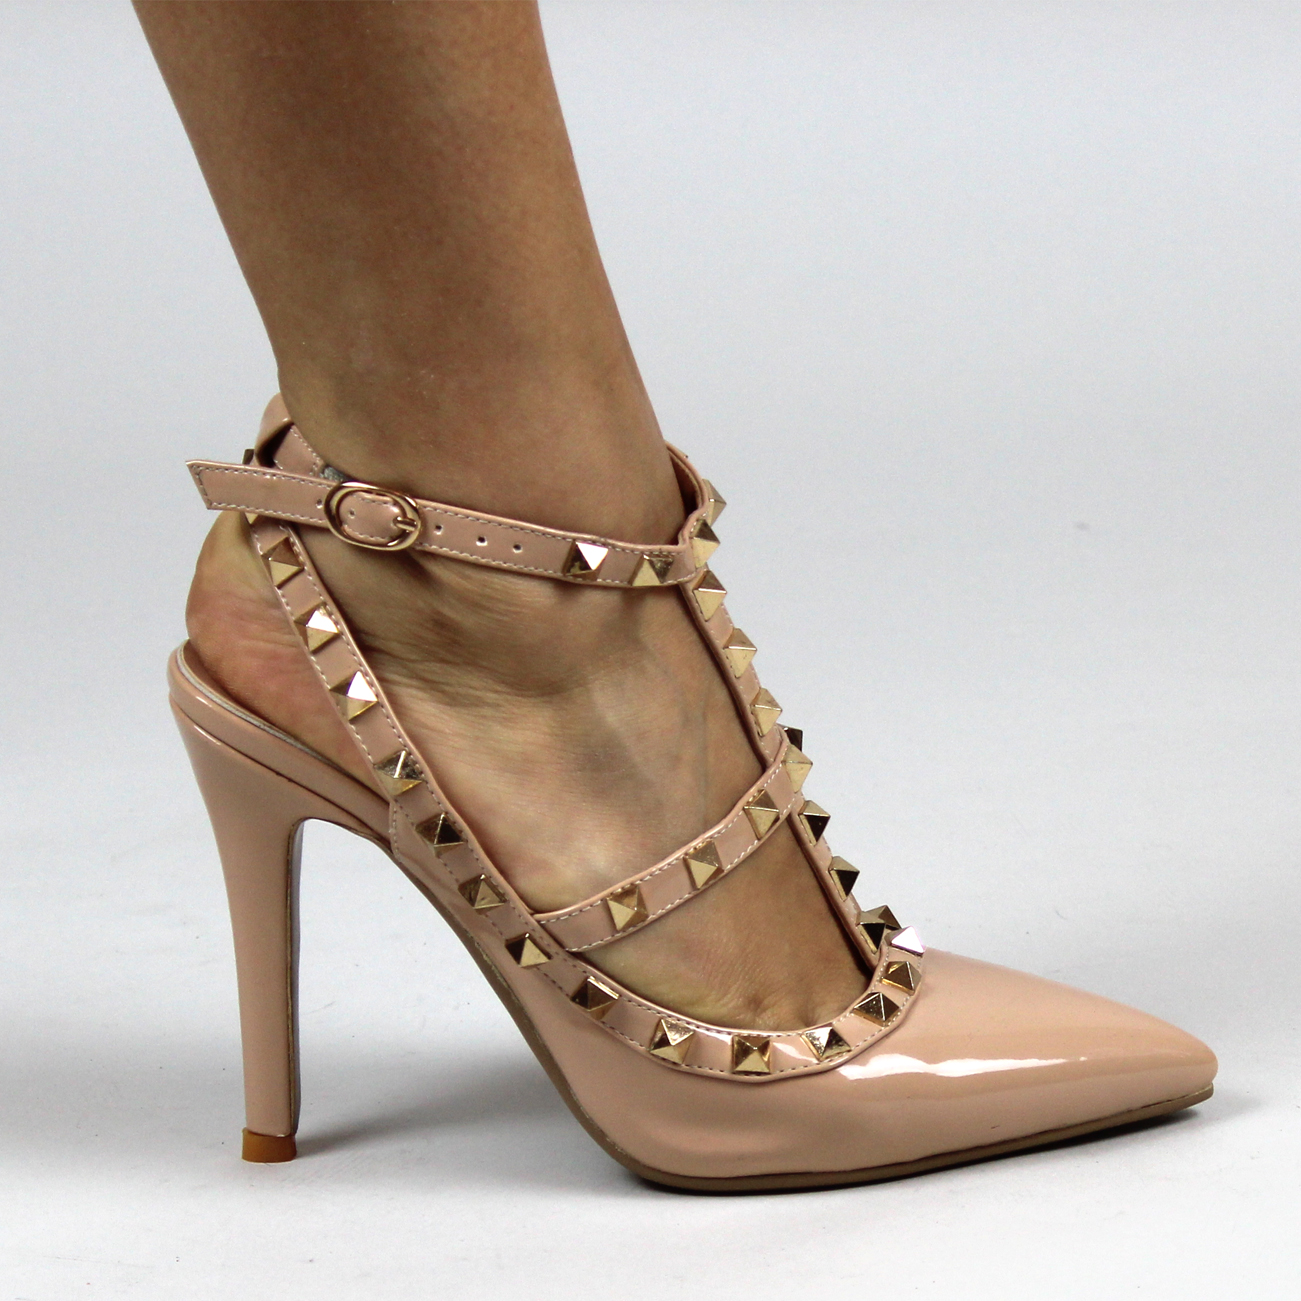 Pointed Heel Shoes Uk